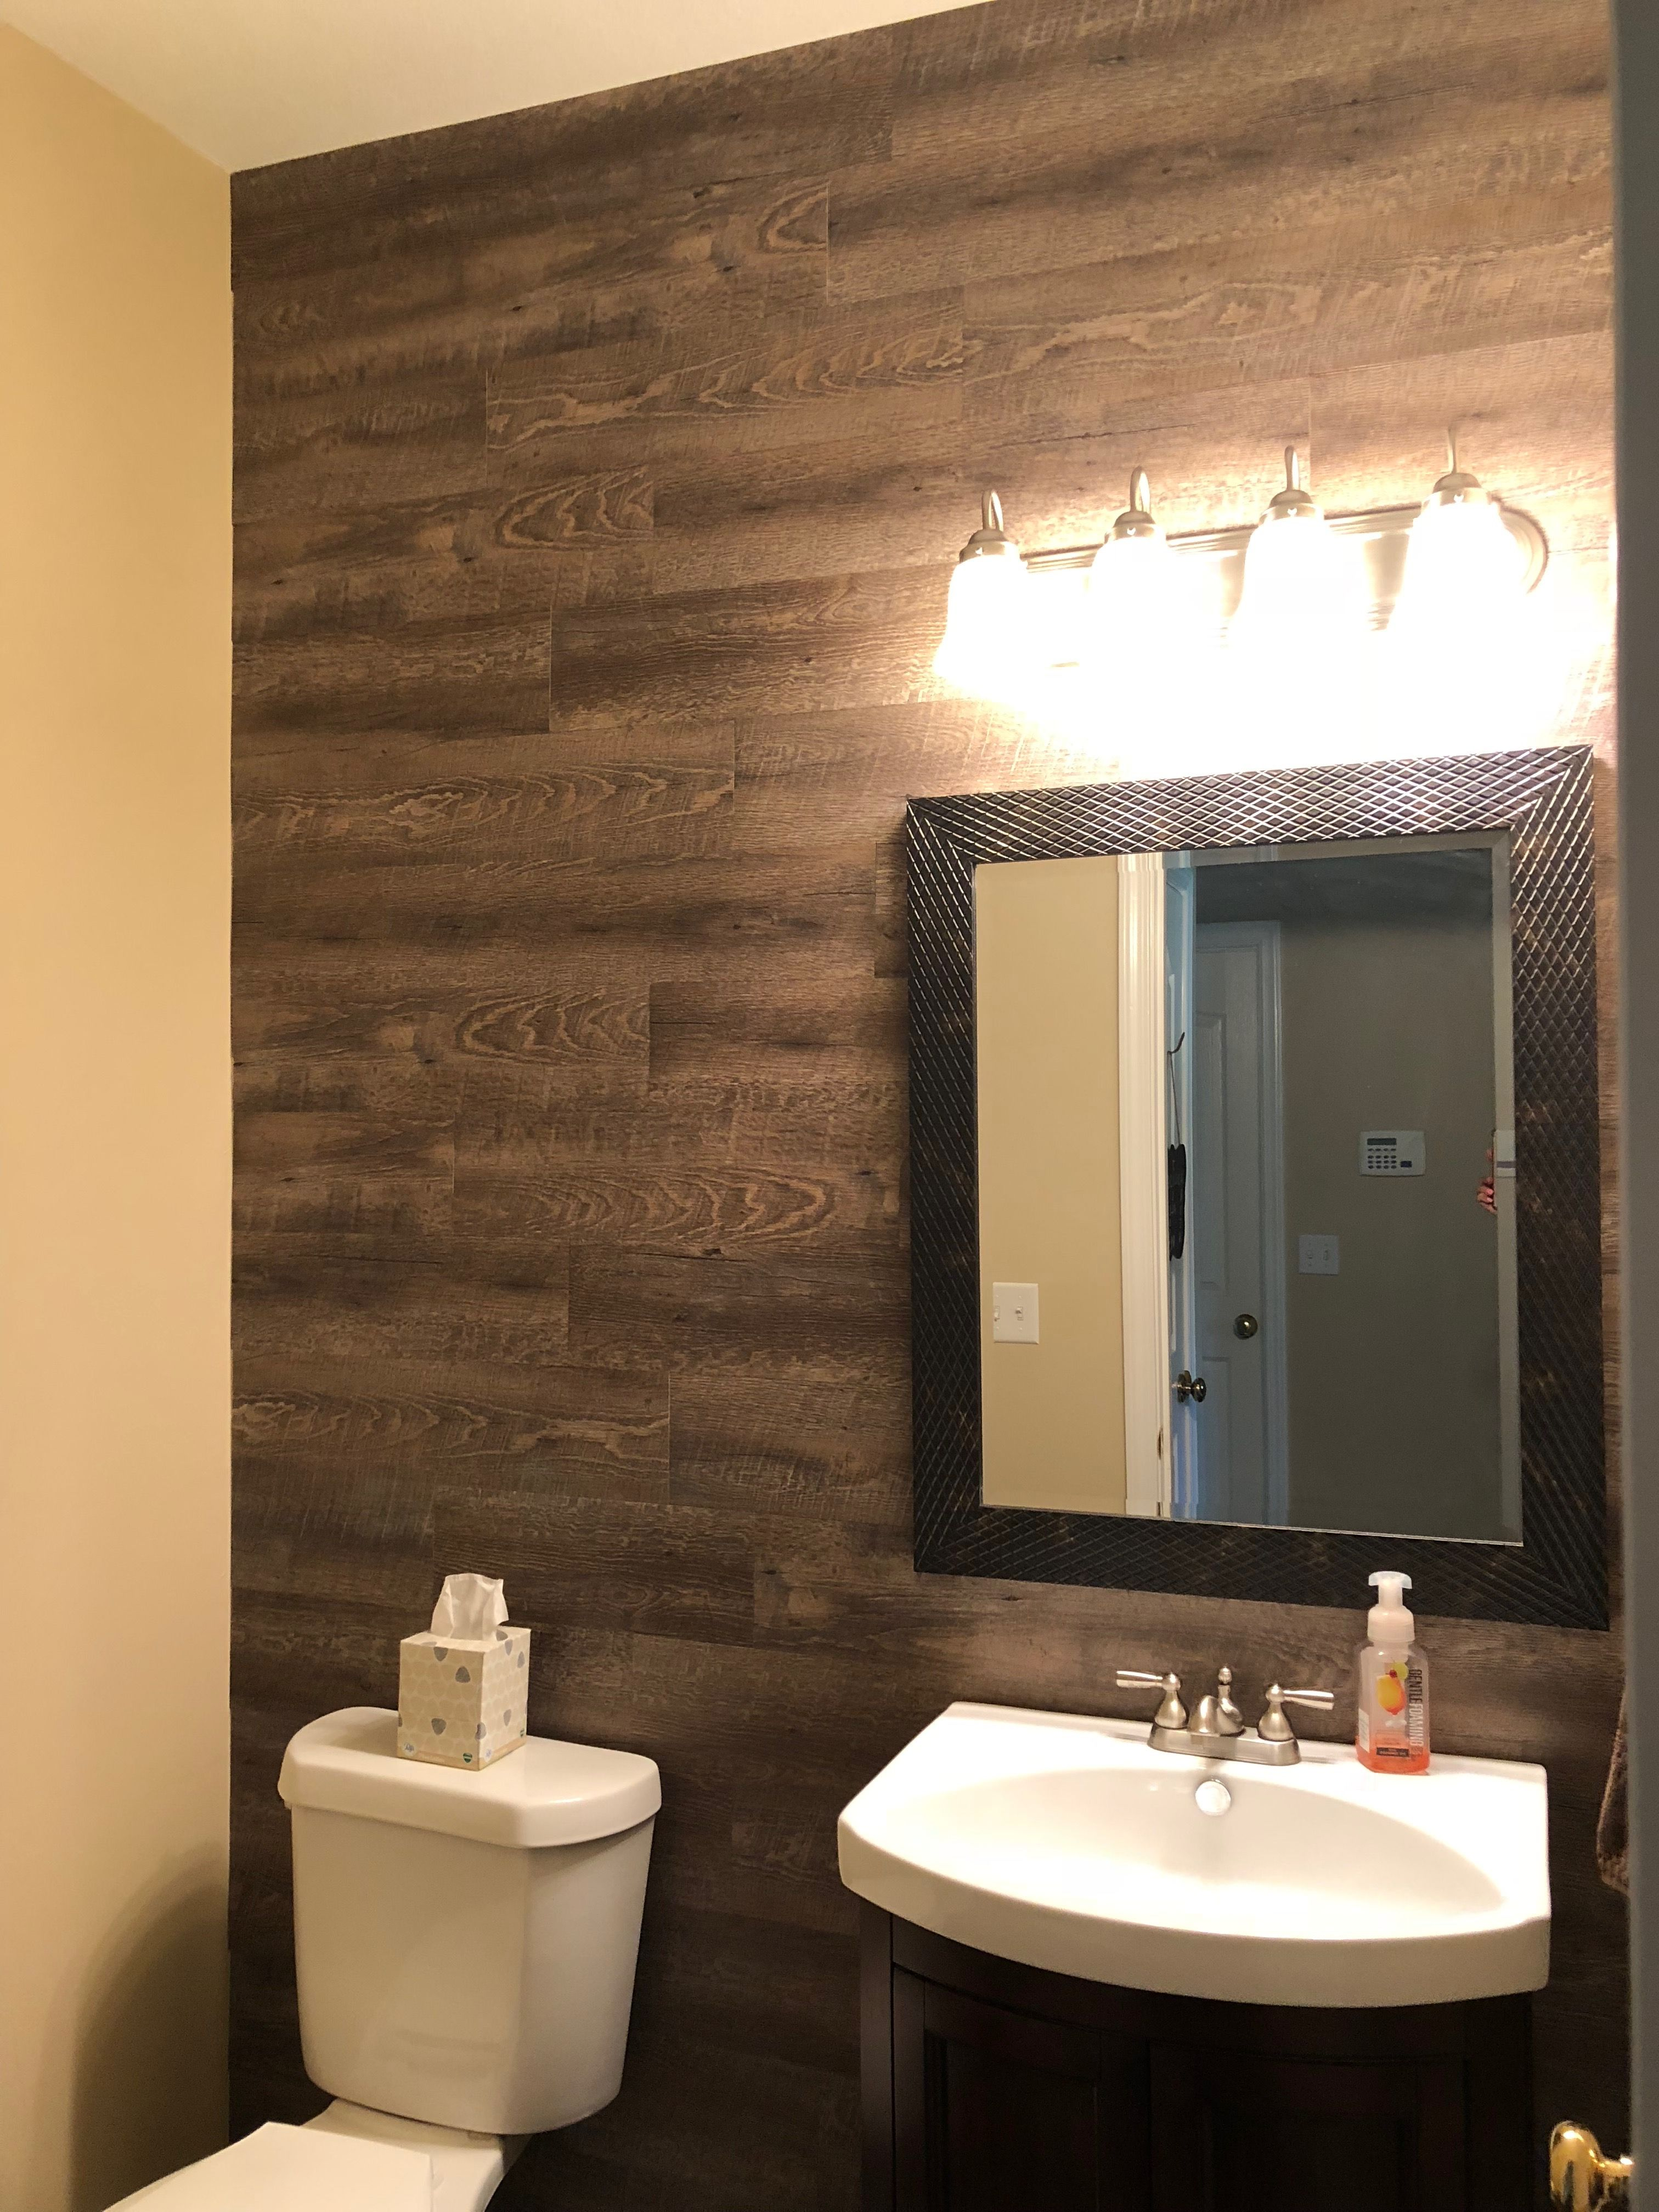 Vinyl Plank Wood Wall Using Peel And Stick Fromlowe S Wood Wall Bathroom Plank Wall Bathroom Bathroom Remodel Small Budget